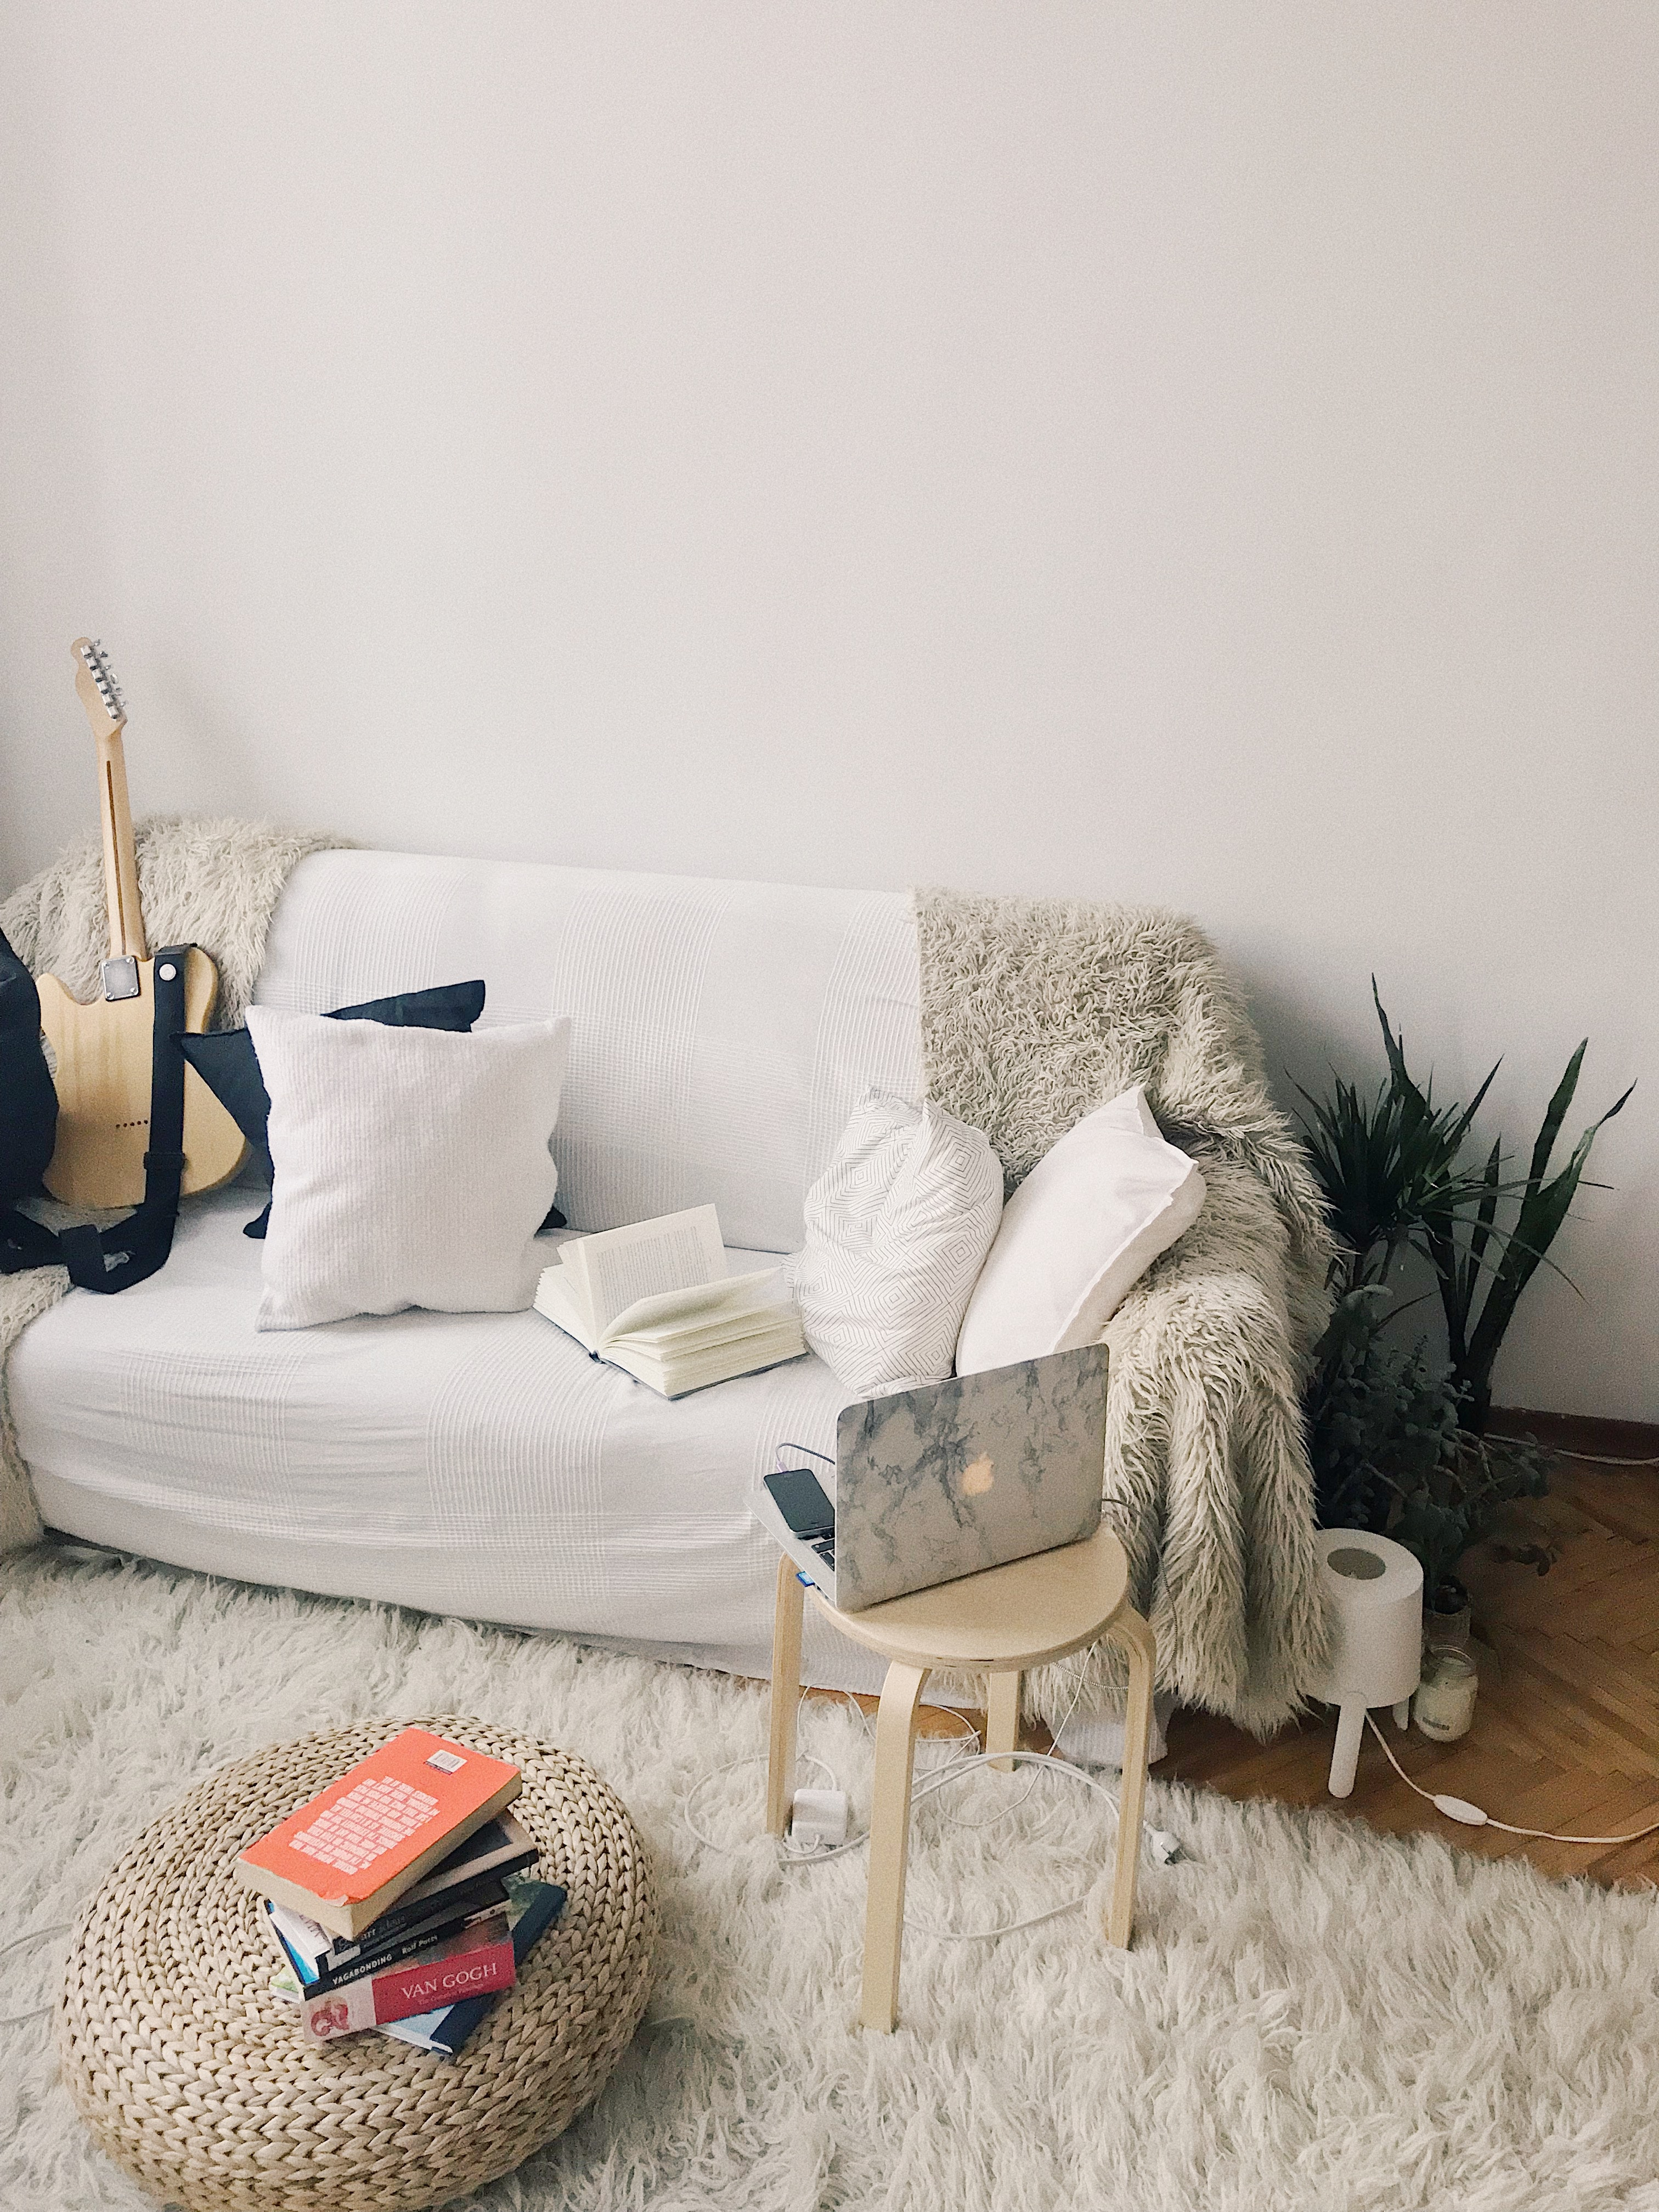 Design A Living Room Online Free: 1000+ Beautiful Living Room Photos · Pexels · Free Stock